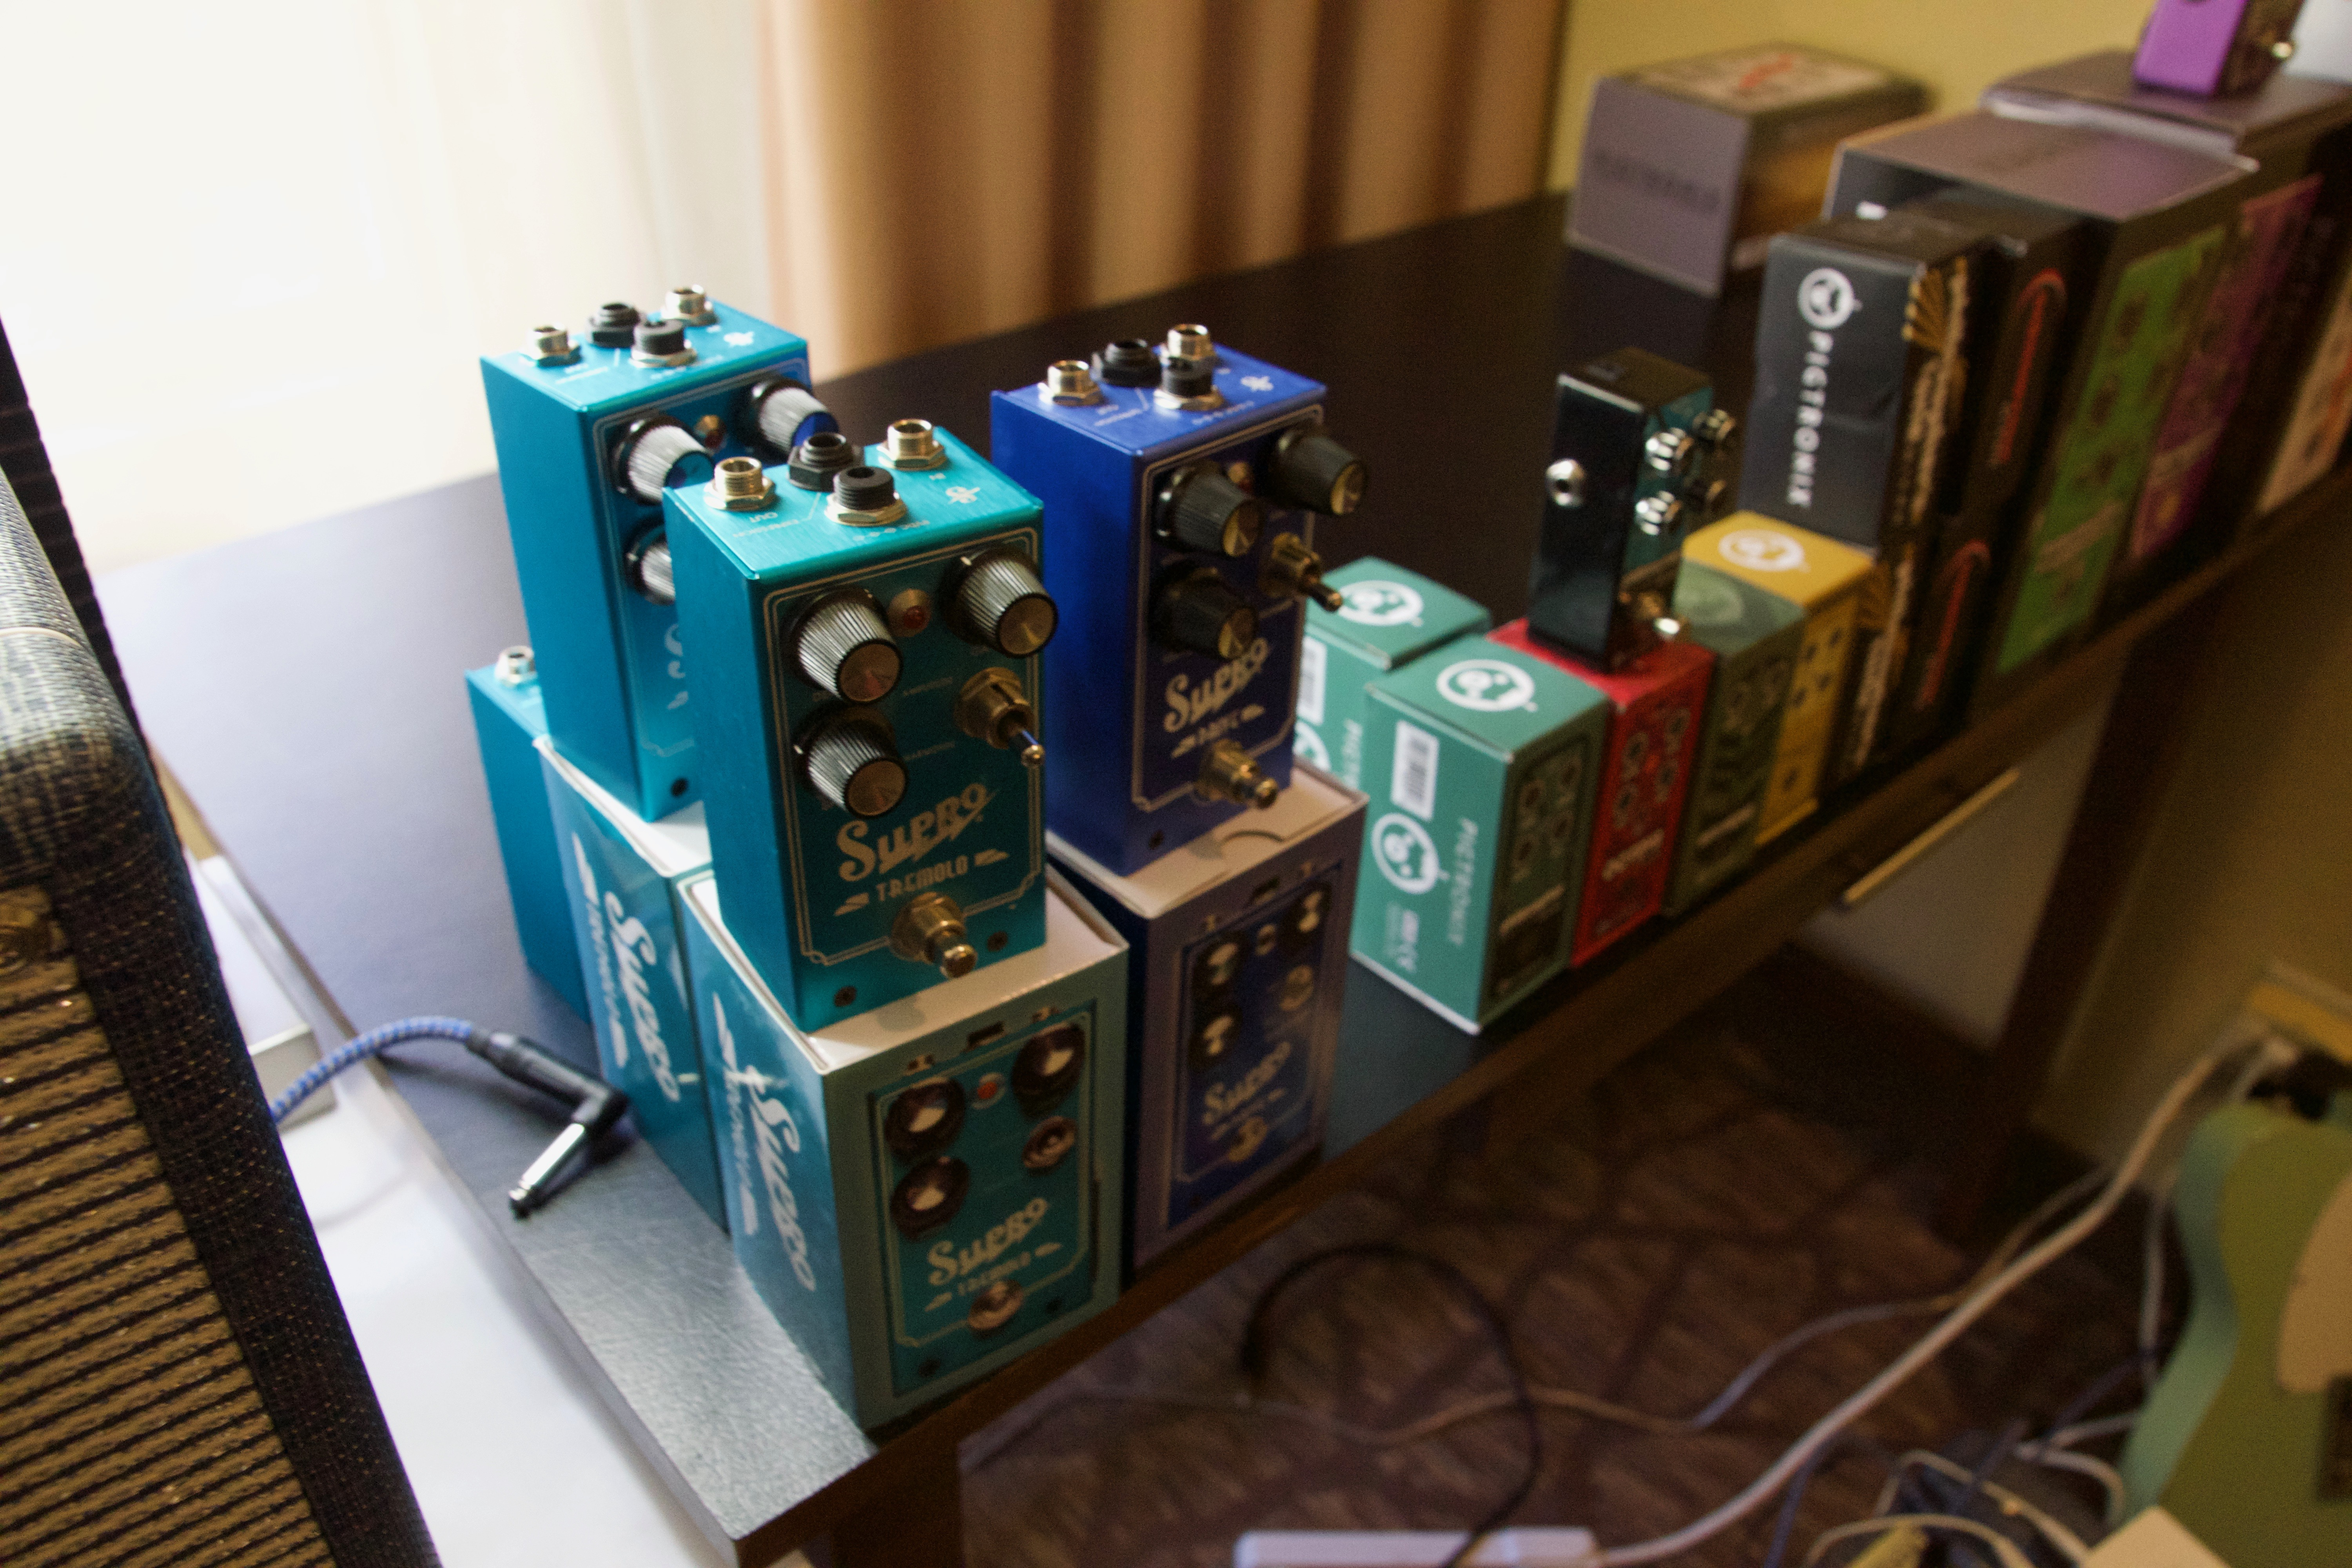 Supro pedals